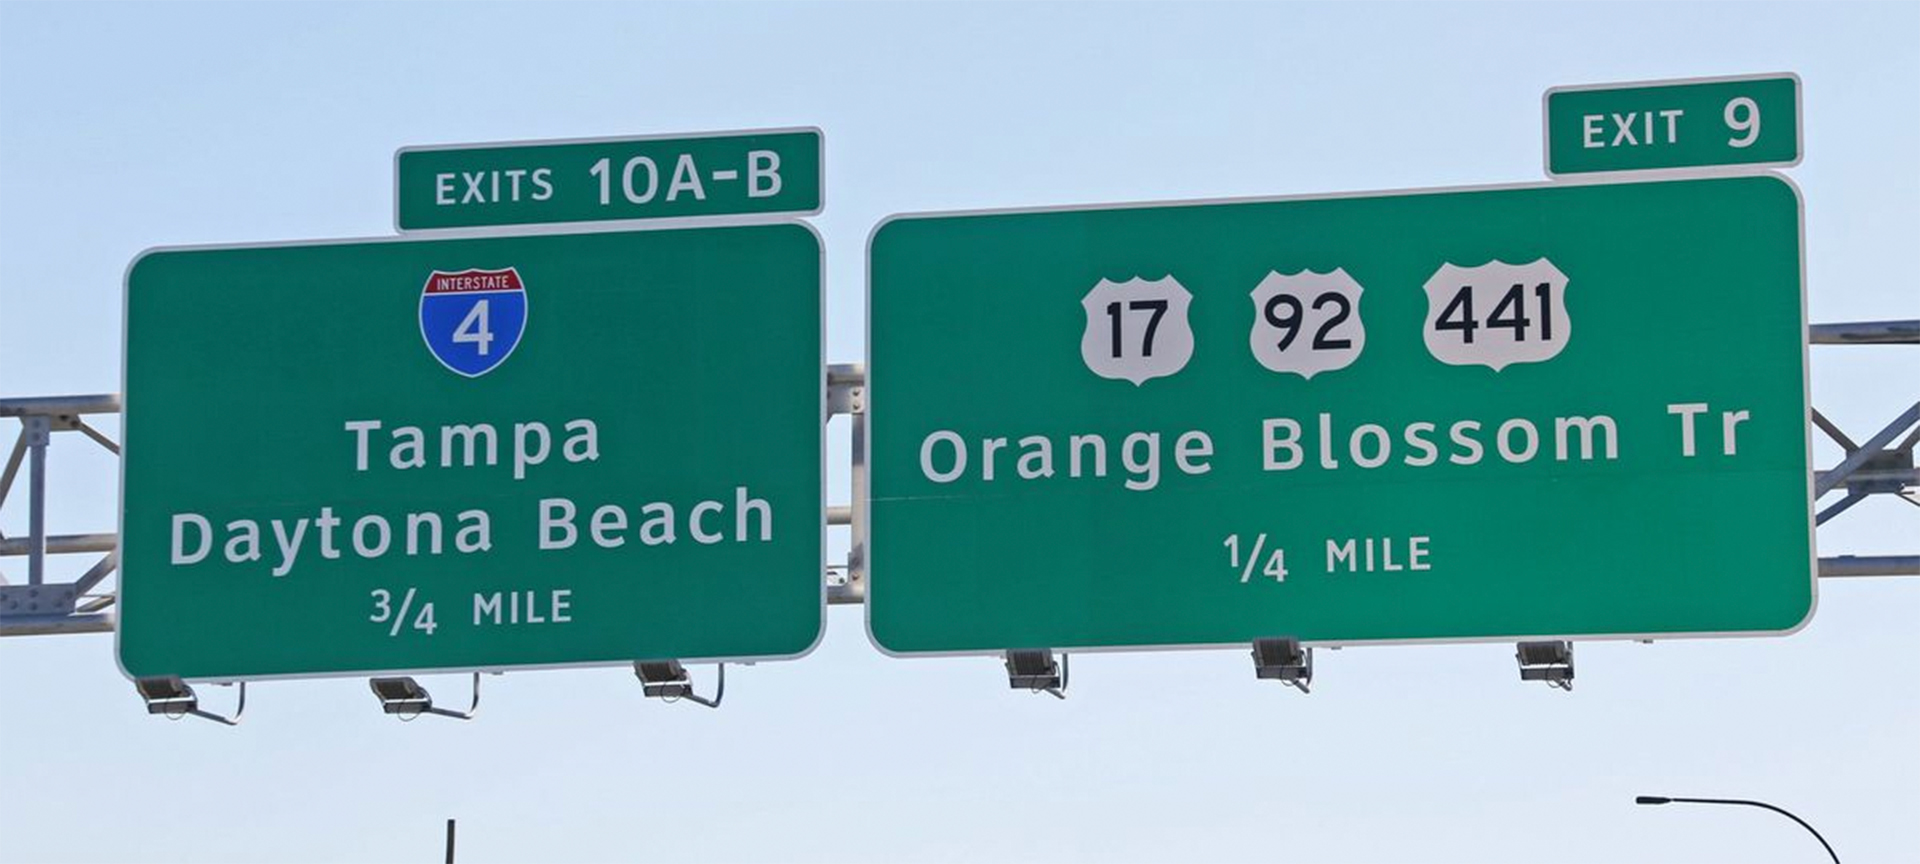 Guide signs include highway route markers (shields), which are reassurance markers, interchange signs, including advance guide and exit signs, and mile markers. Advance guide and exit signs usually feature control cities or other locations to help direct drivers toward their desired destination. The position of the exit number plaque indicates right or left exit (and should indicate center lane exit).